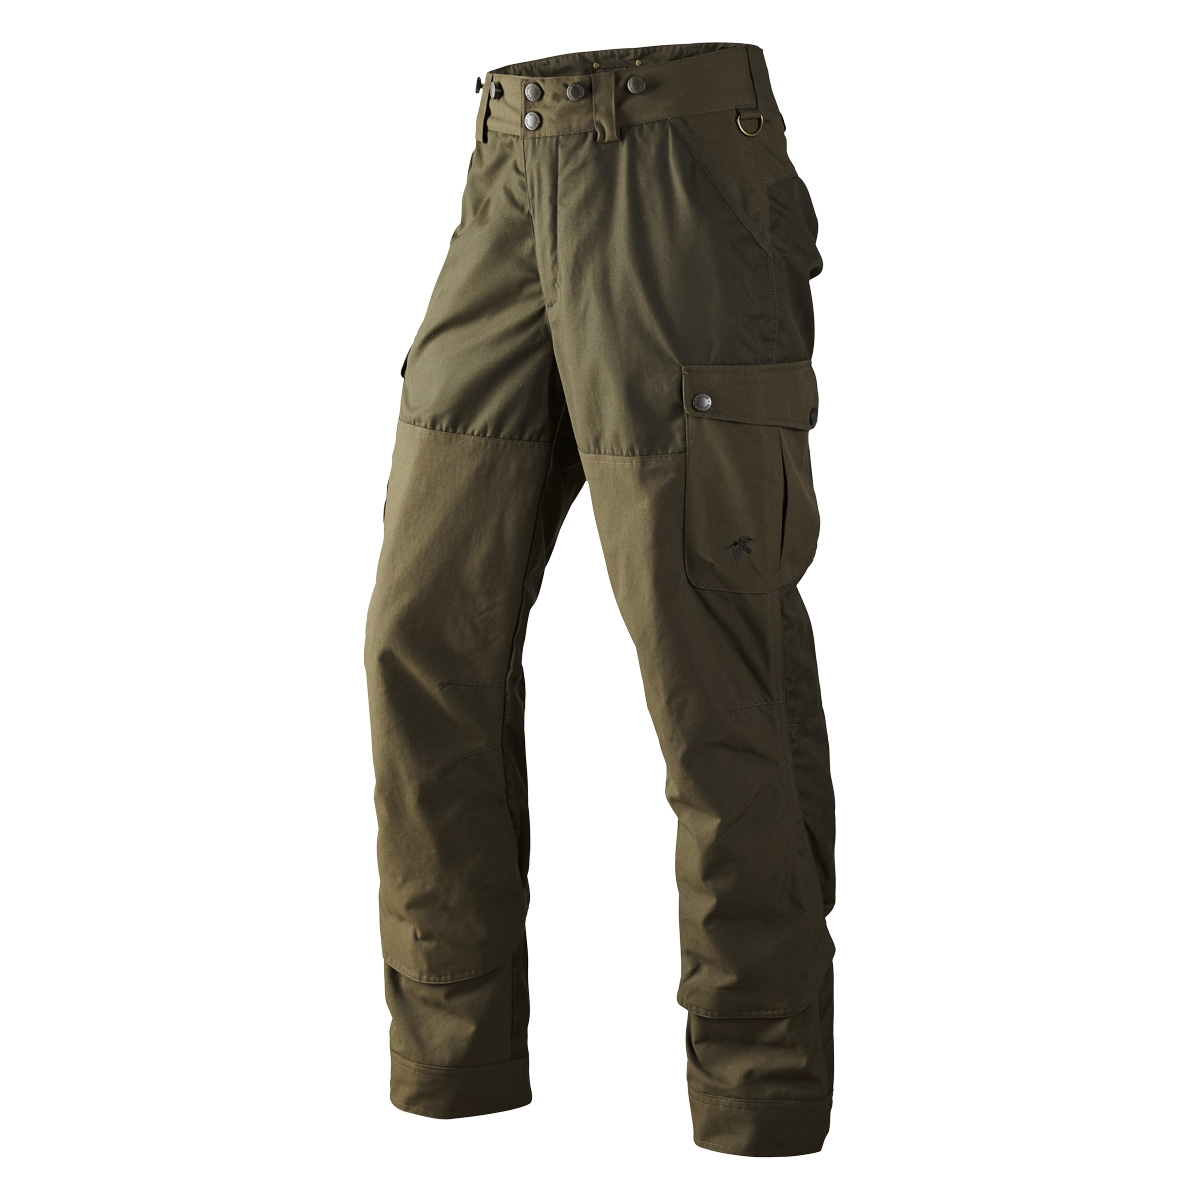 Image of Seeland Exeter Advantage Trousers - Pine Green